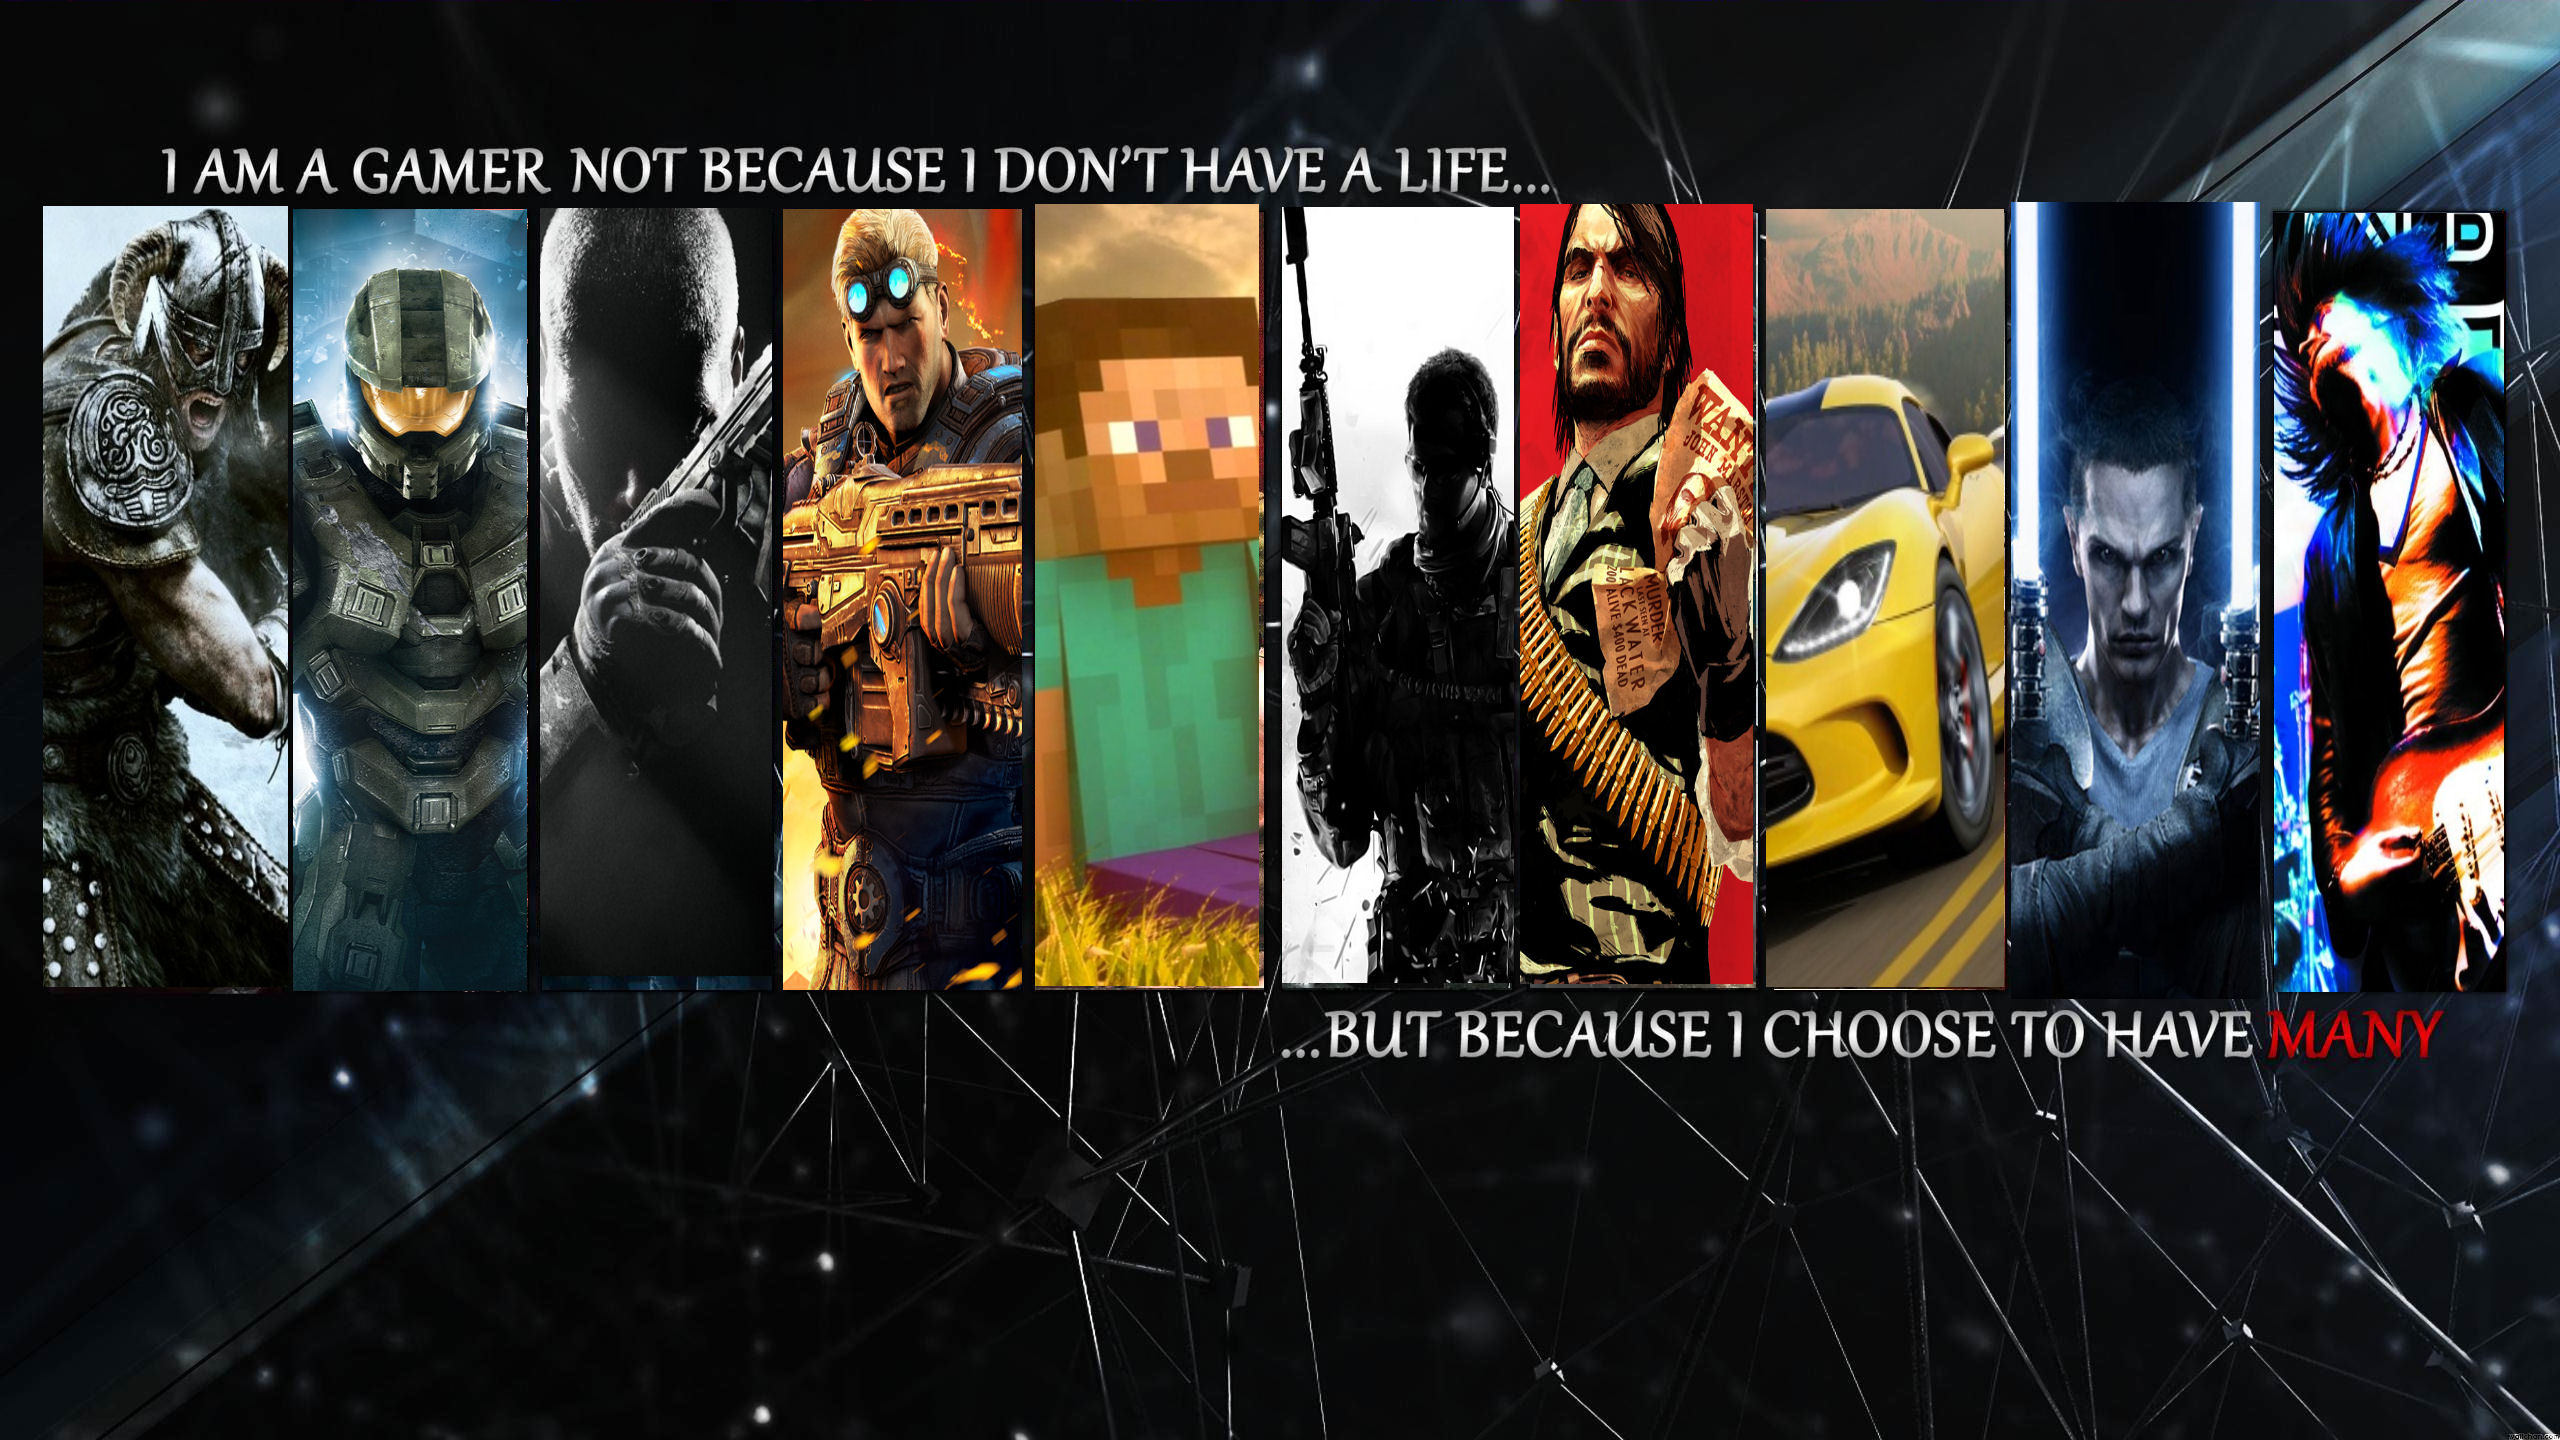 redid a gaming wallpaper i saw but with different games gaming 2560x1440